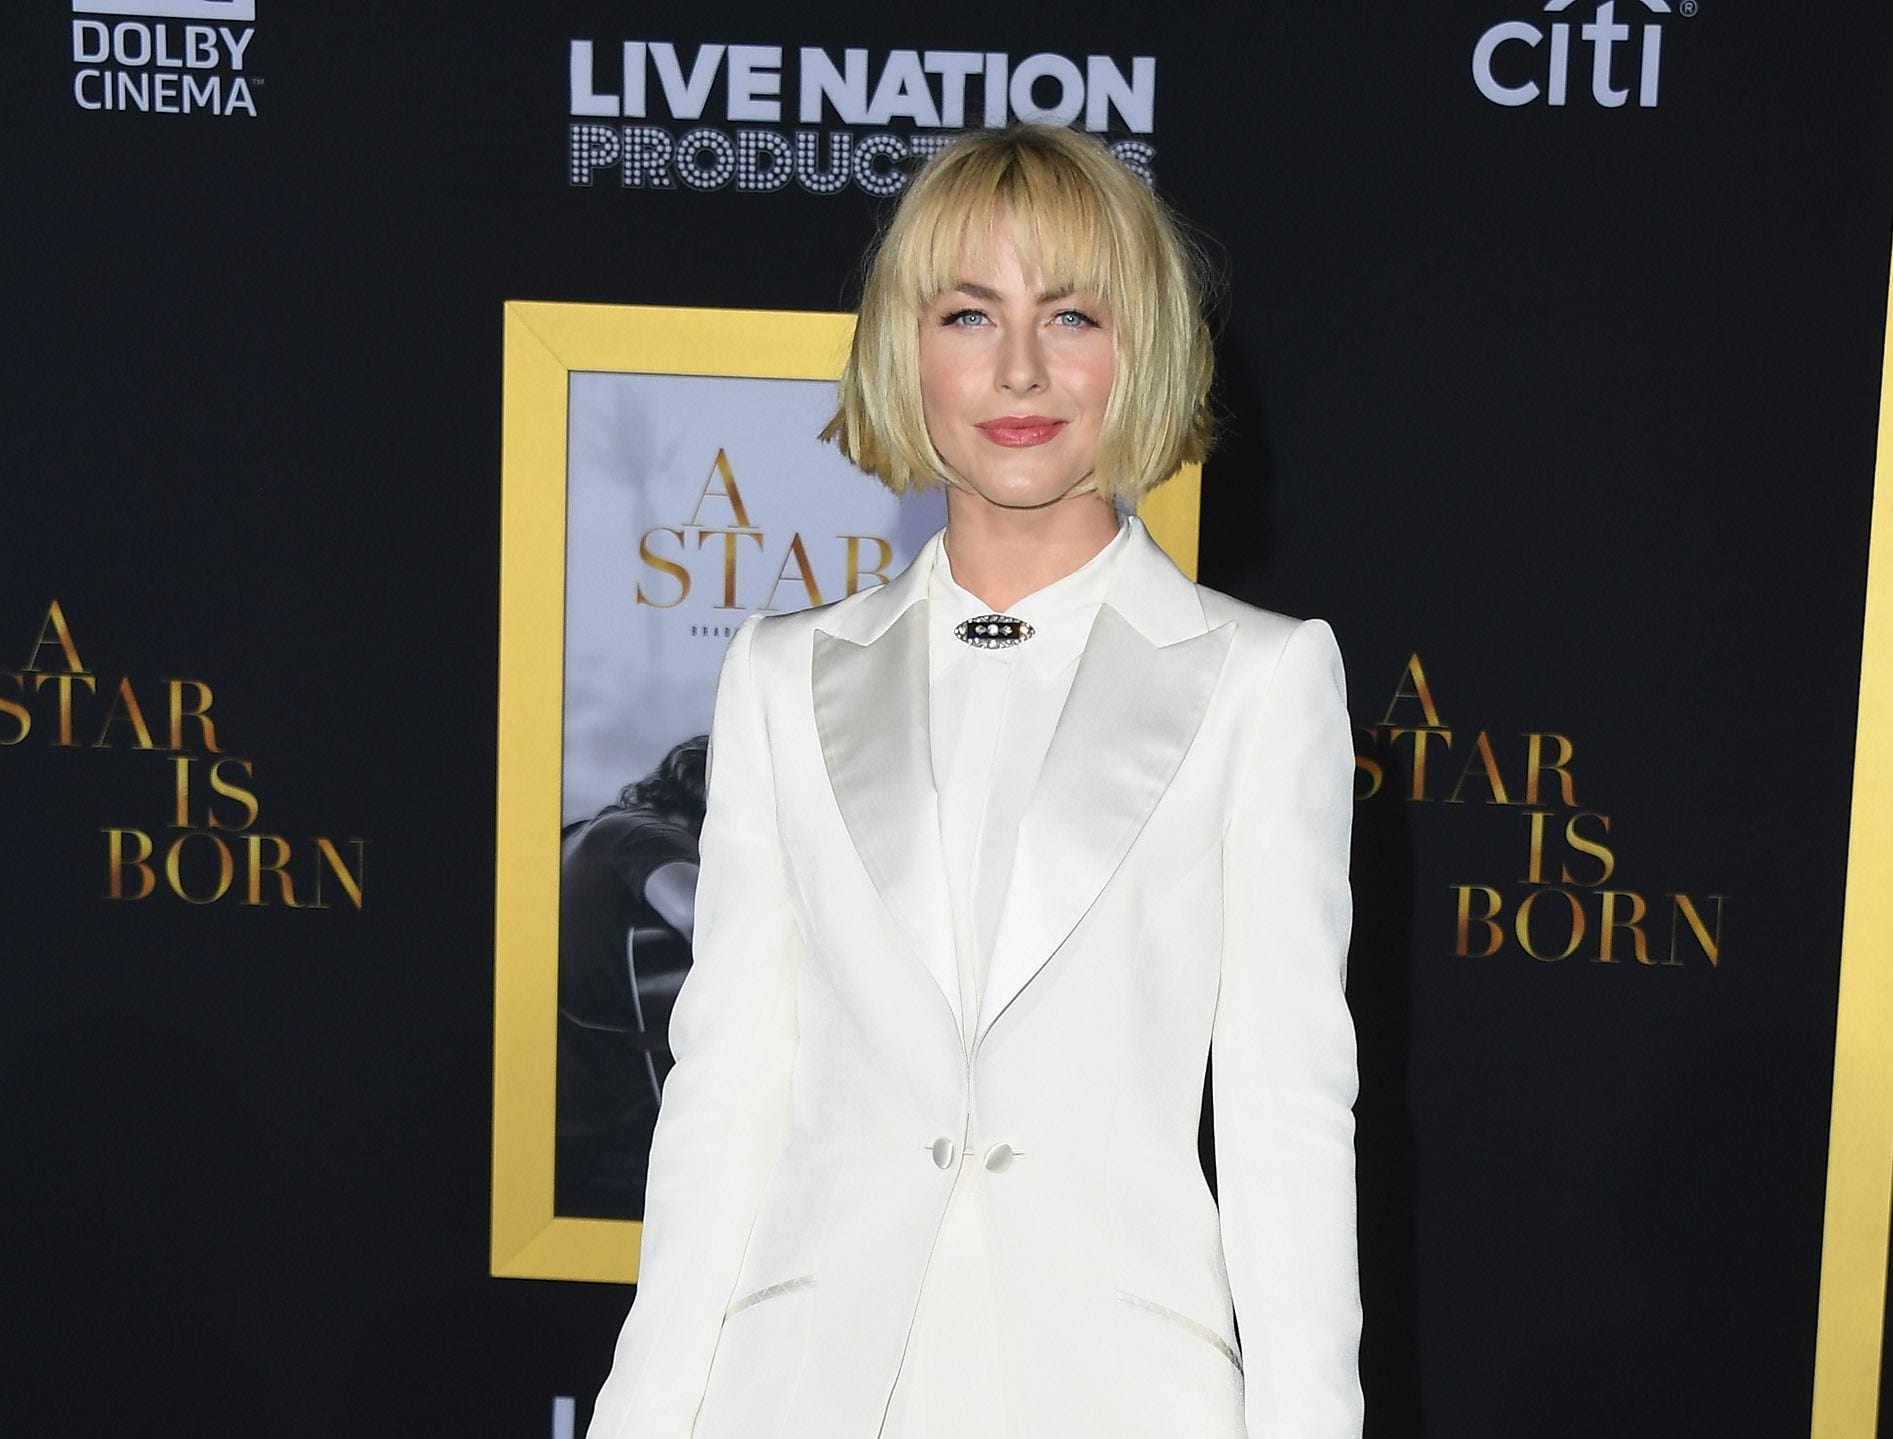 "LOS ANGELES, CA - SEPTEMBER 24:  Julianne Hough attends the premiere of Warner Bros. Pictures' ""A Star Is Born"" at The Shrine Auditorium on September 24, 2018 in Los Angeles, California.  (Photo by Jon Kopaloff/FilmMagic,) ORG XMIT: 775229470 ORIG FILE ID: 1039717820"